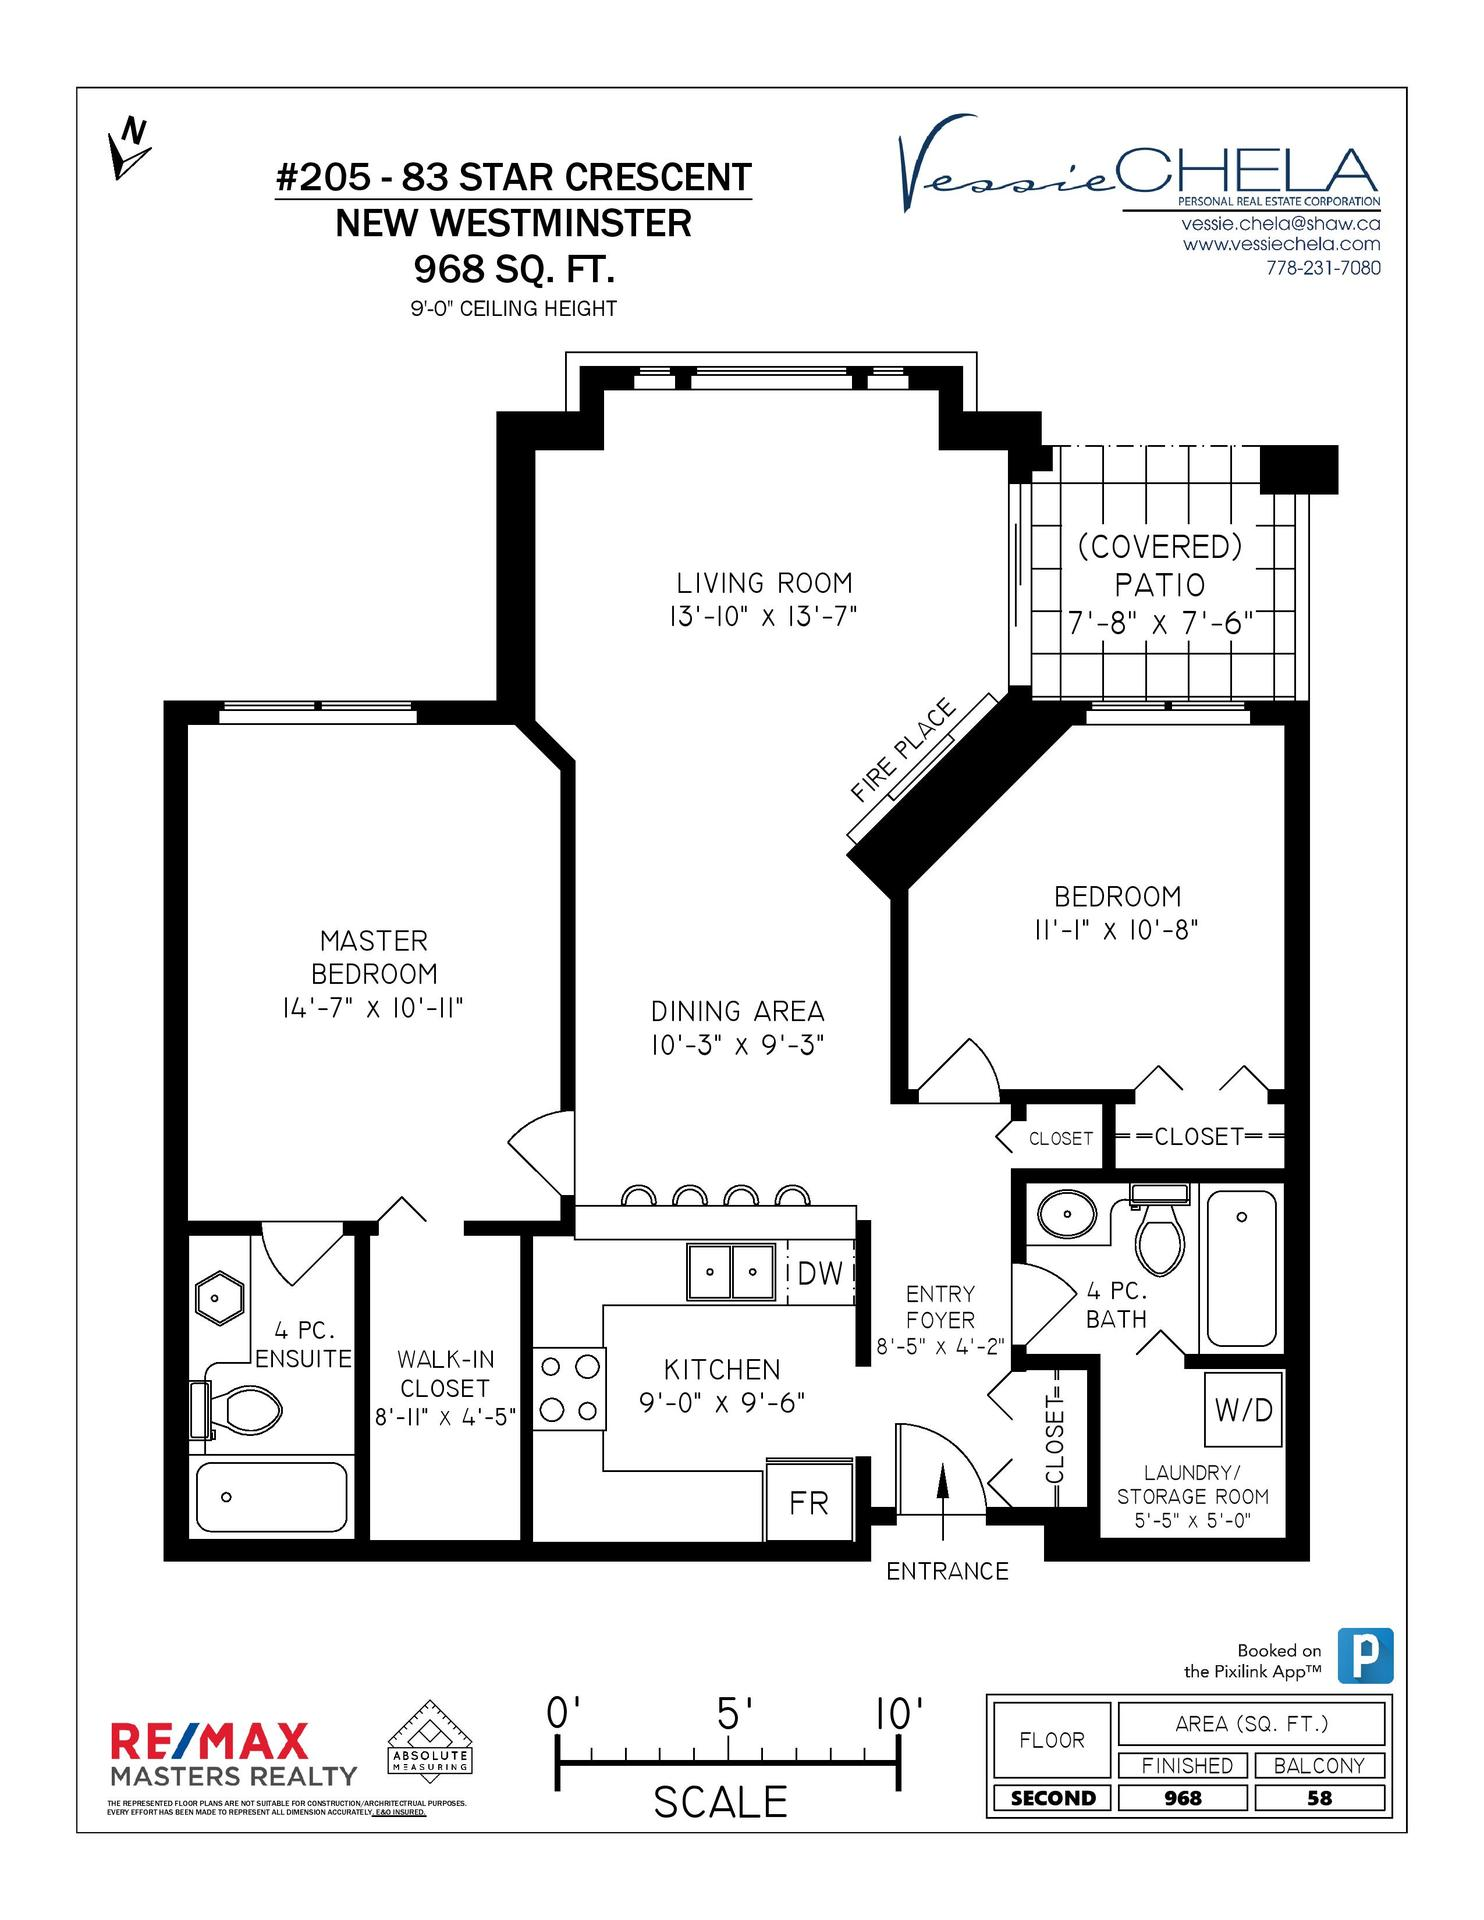 153508-1 at 205 - 83 Star Crescent, Queensborough, New Westminster